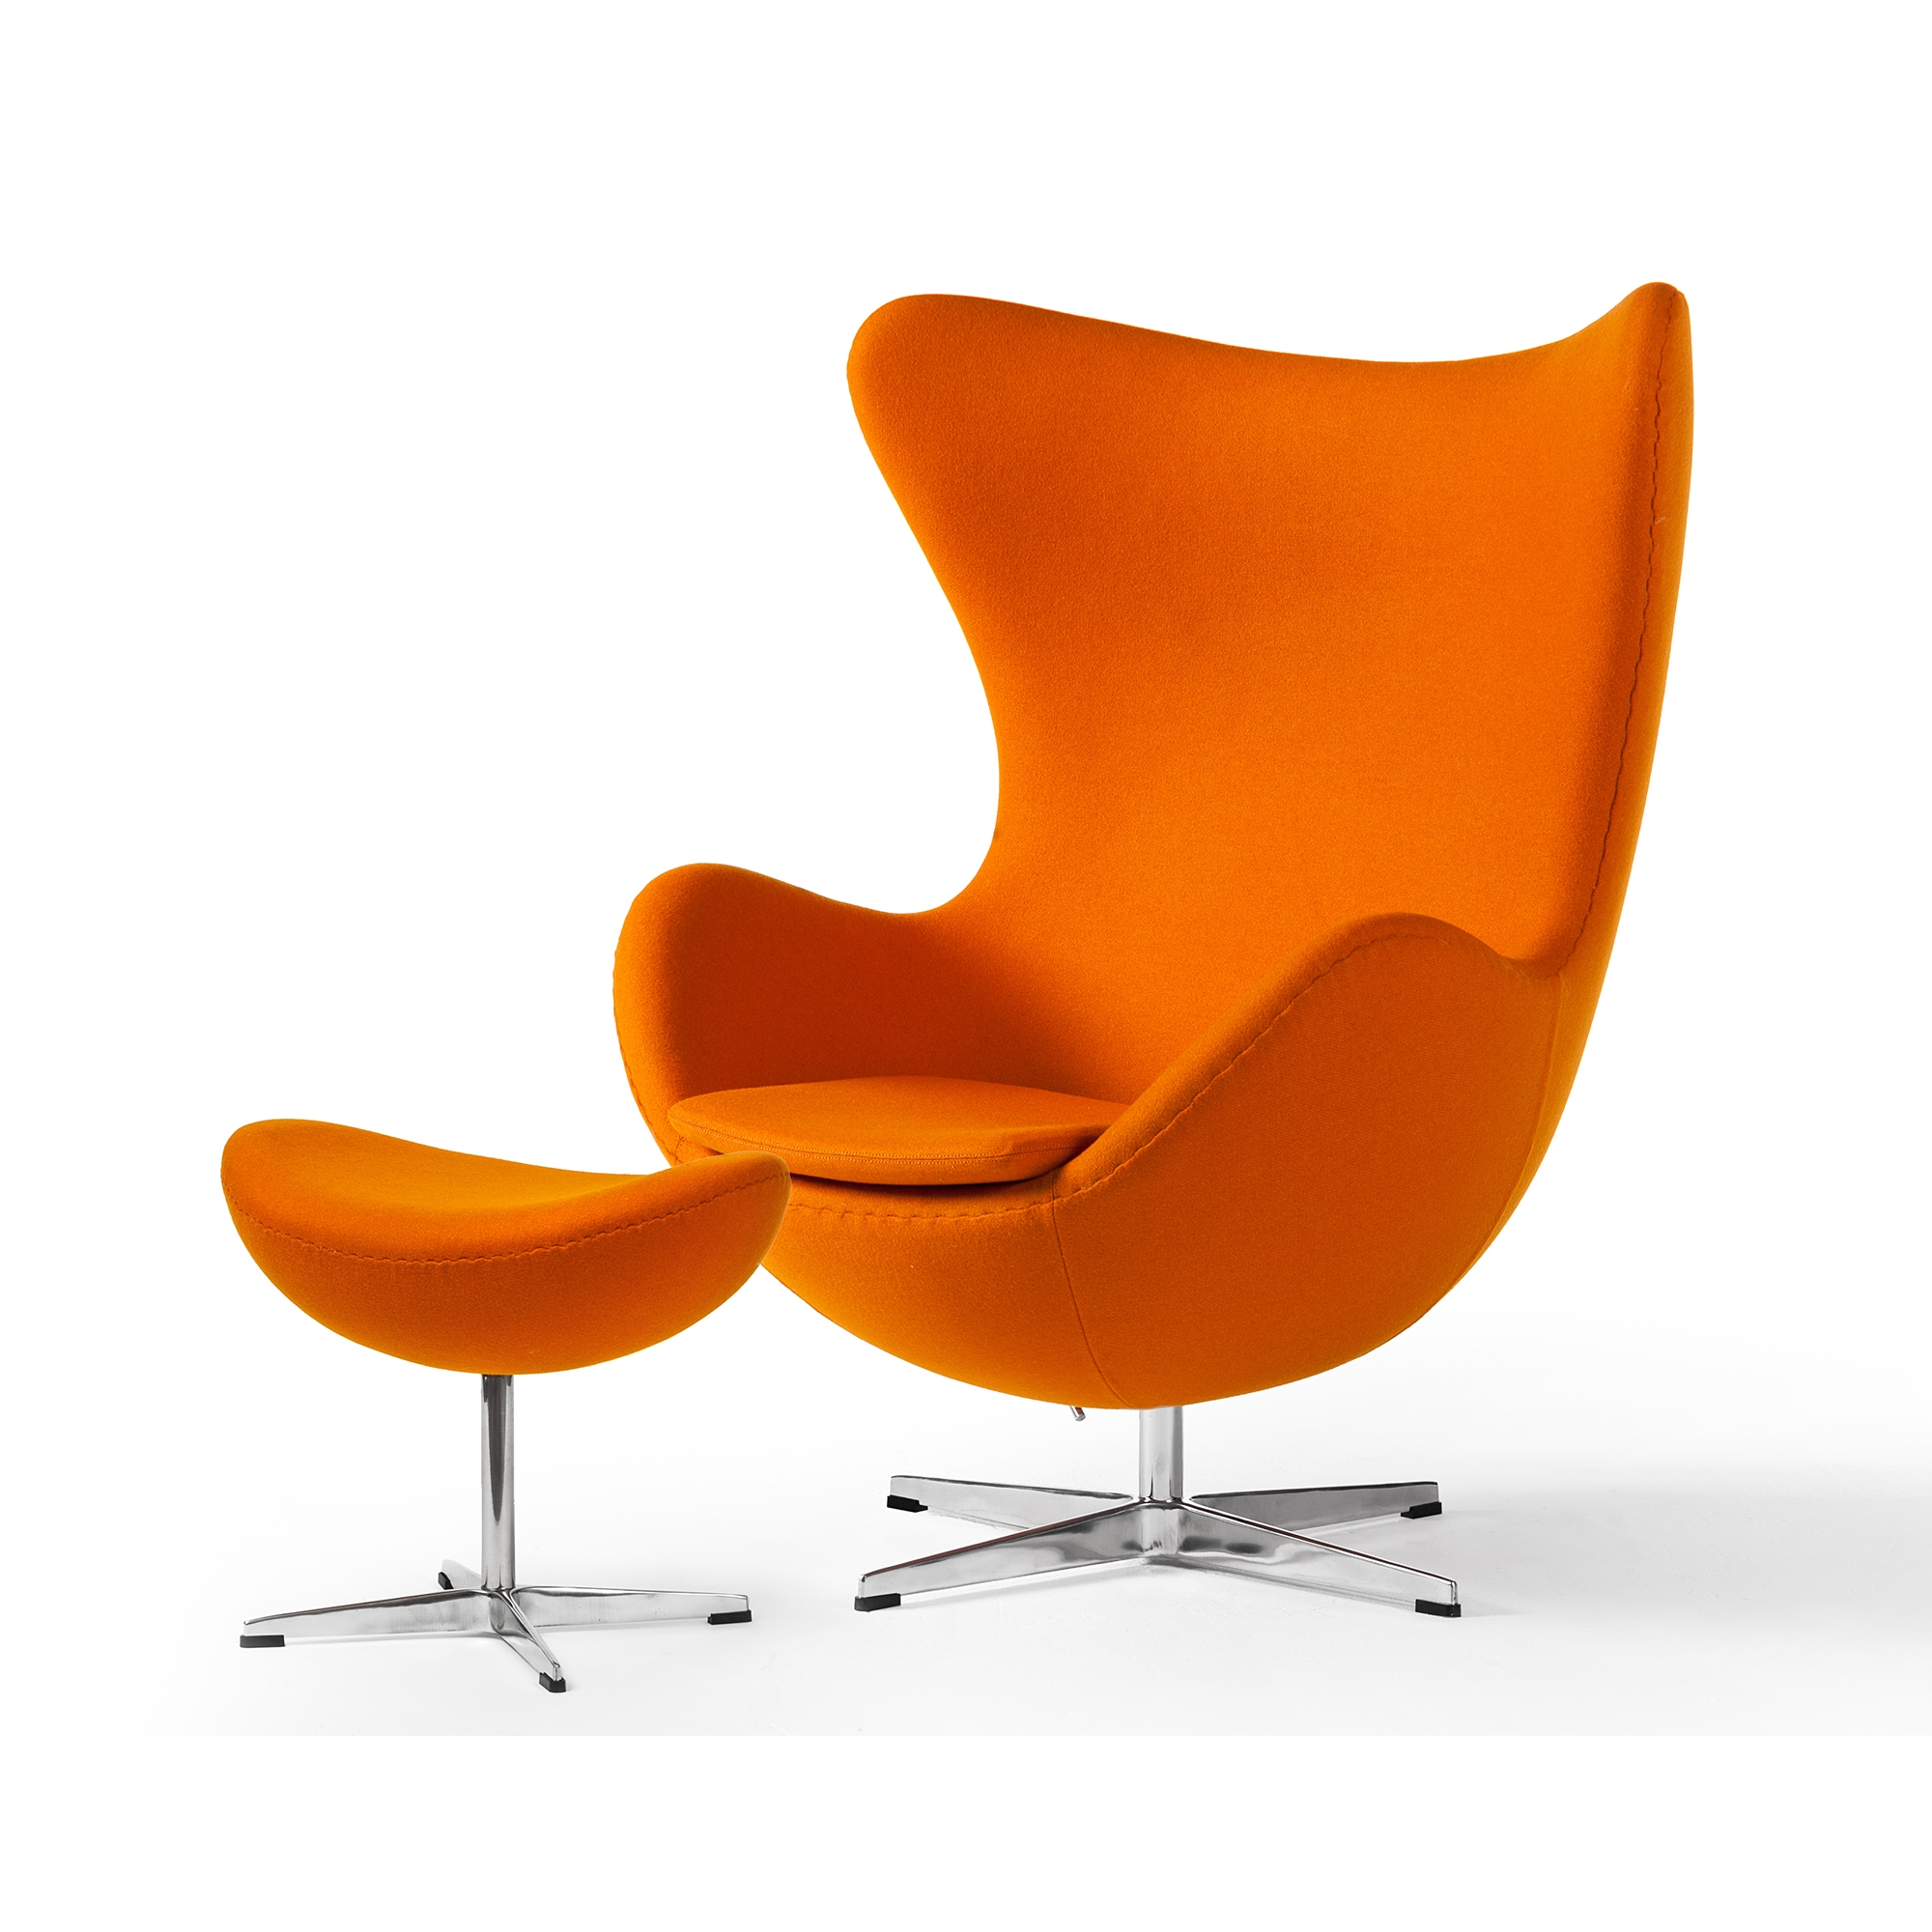 Arne Jacobsen Inspired Egg Swivel Chair In Cashmere Orange With Tilt Function The Khazana Home Austin Furniture